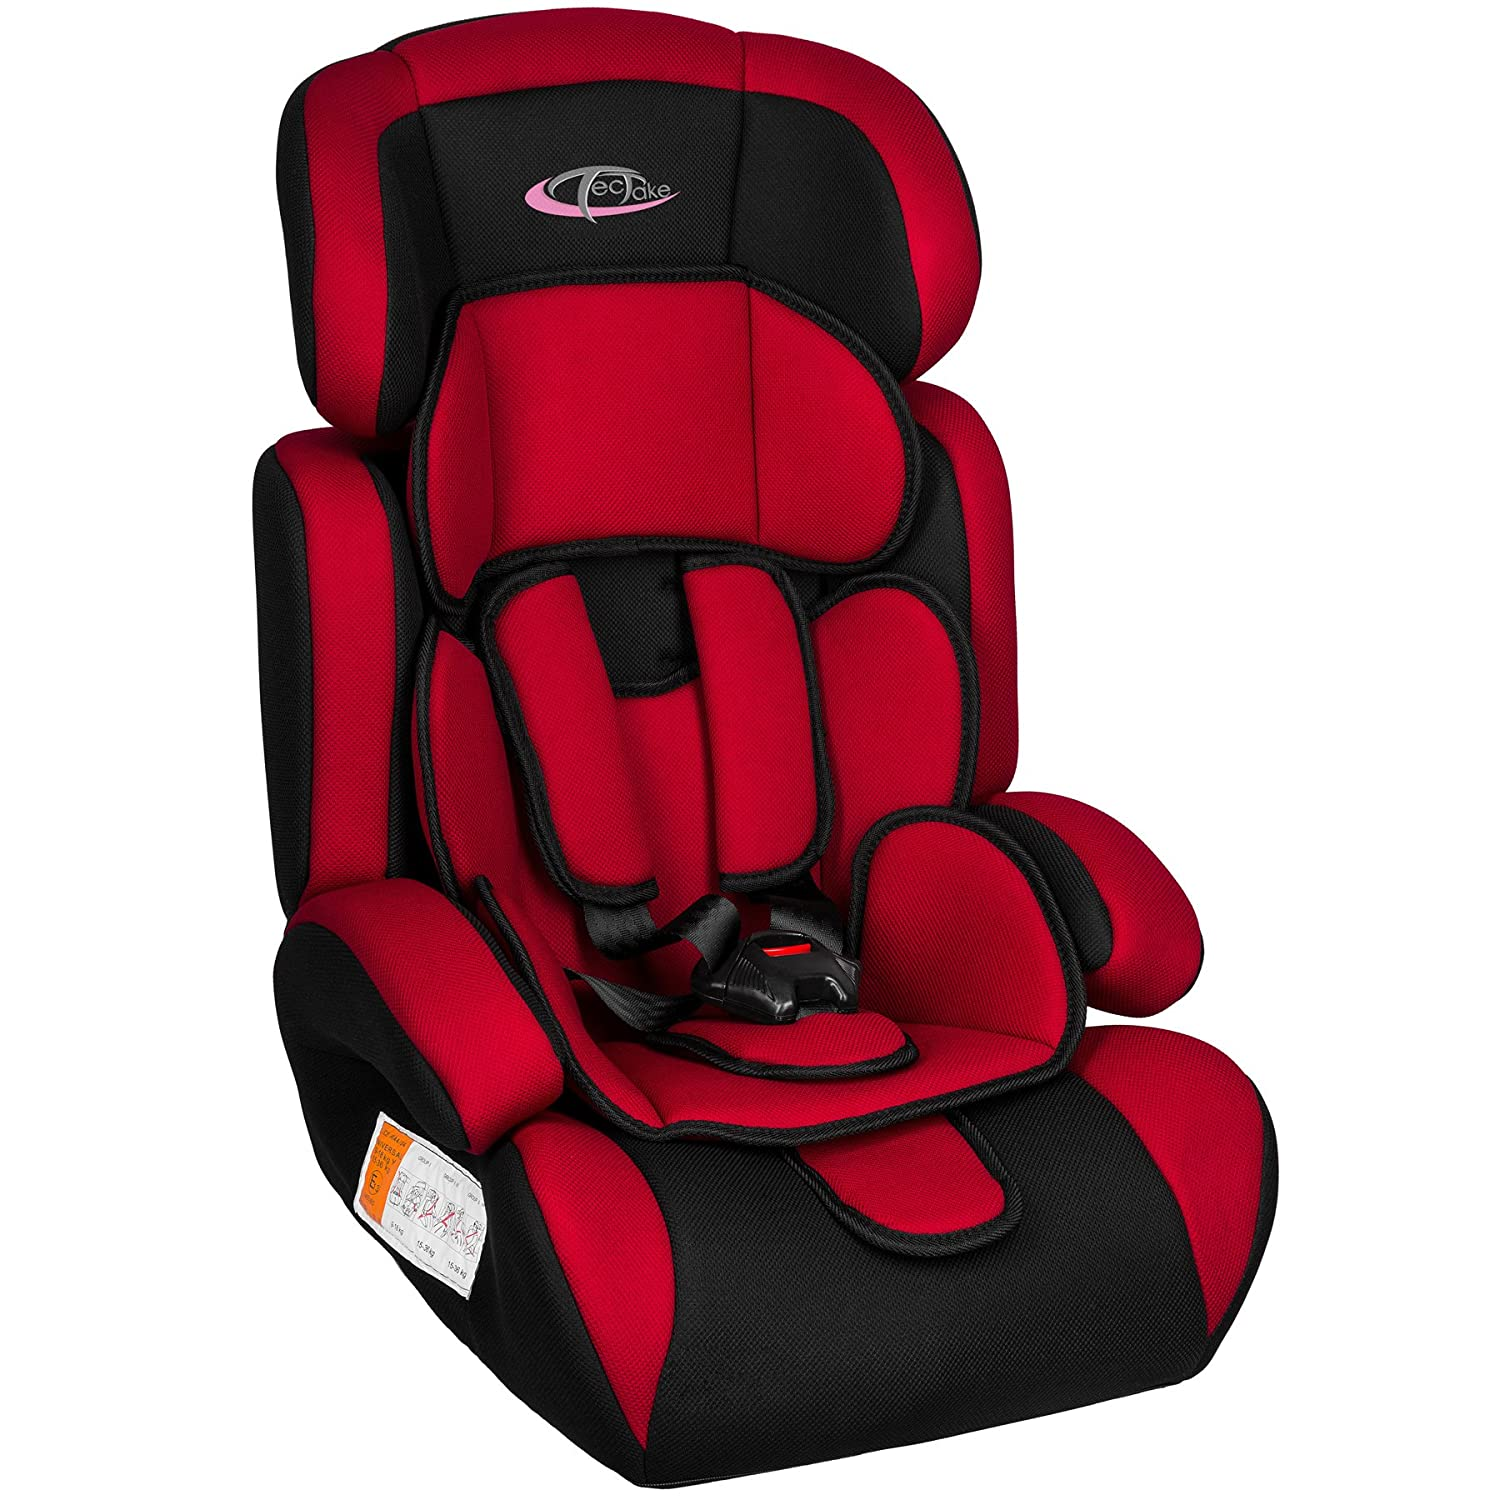 TecTake Sige Auto Groupe I II III Pour Enfants 9 36 Kg 1 12 Ans Rose Amazonfr Bbs Puriculture